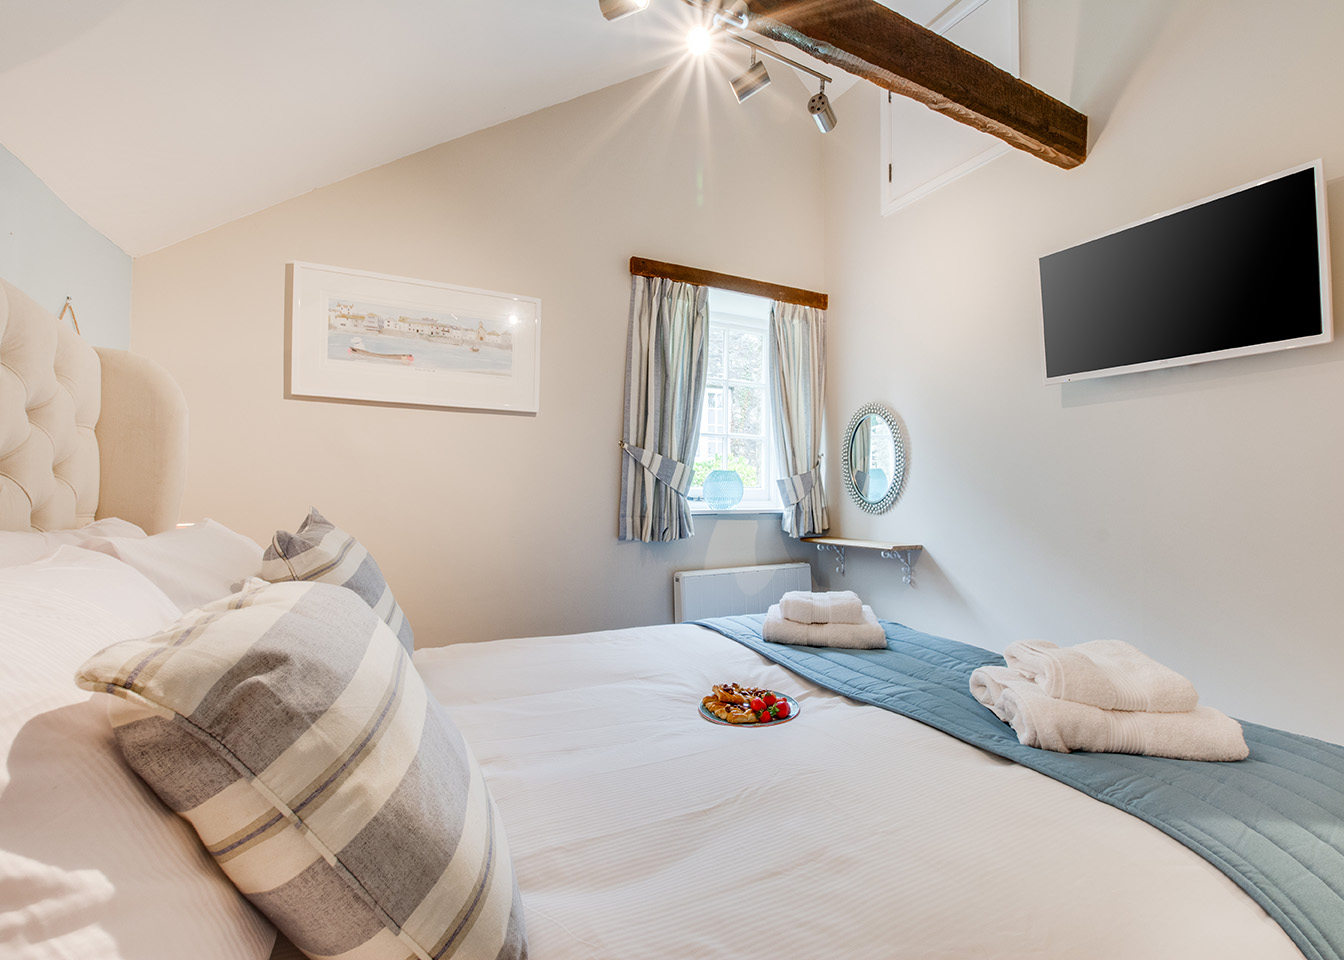 The master bedroom of Snappers luxury self catering converted barn holiday cottage at Penrose Burden in North Cornwall 02.jpg